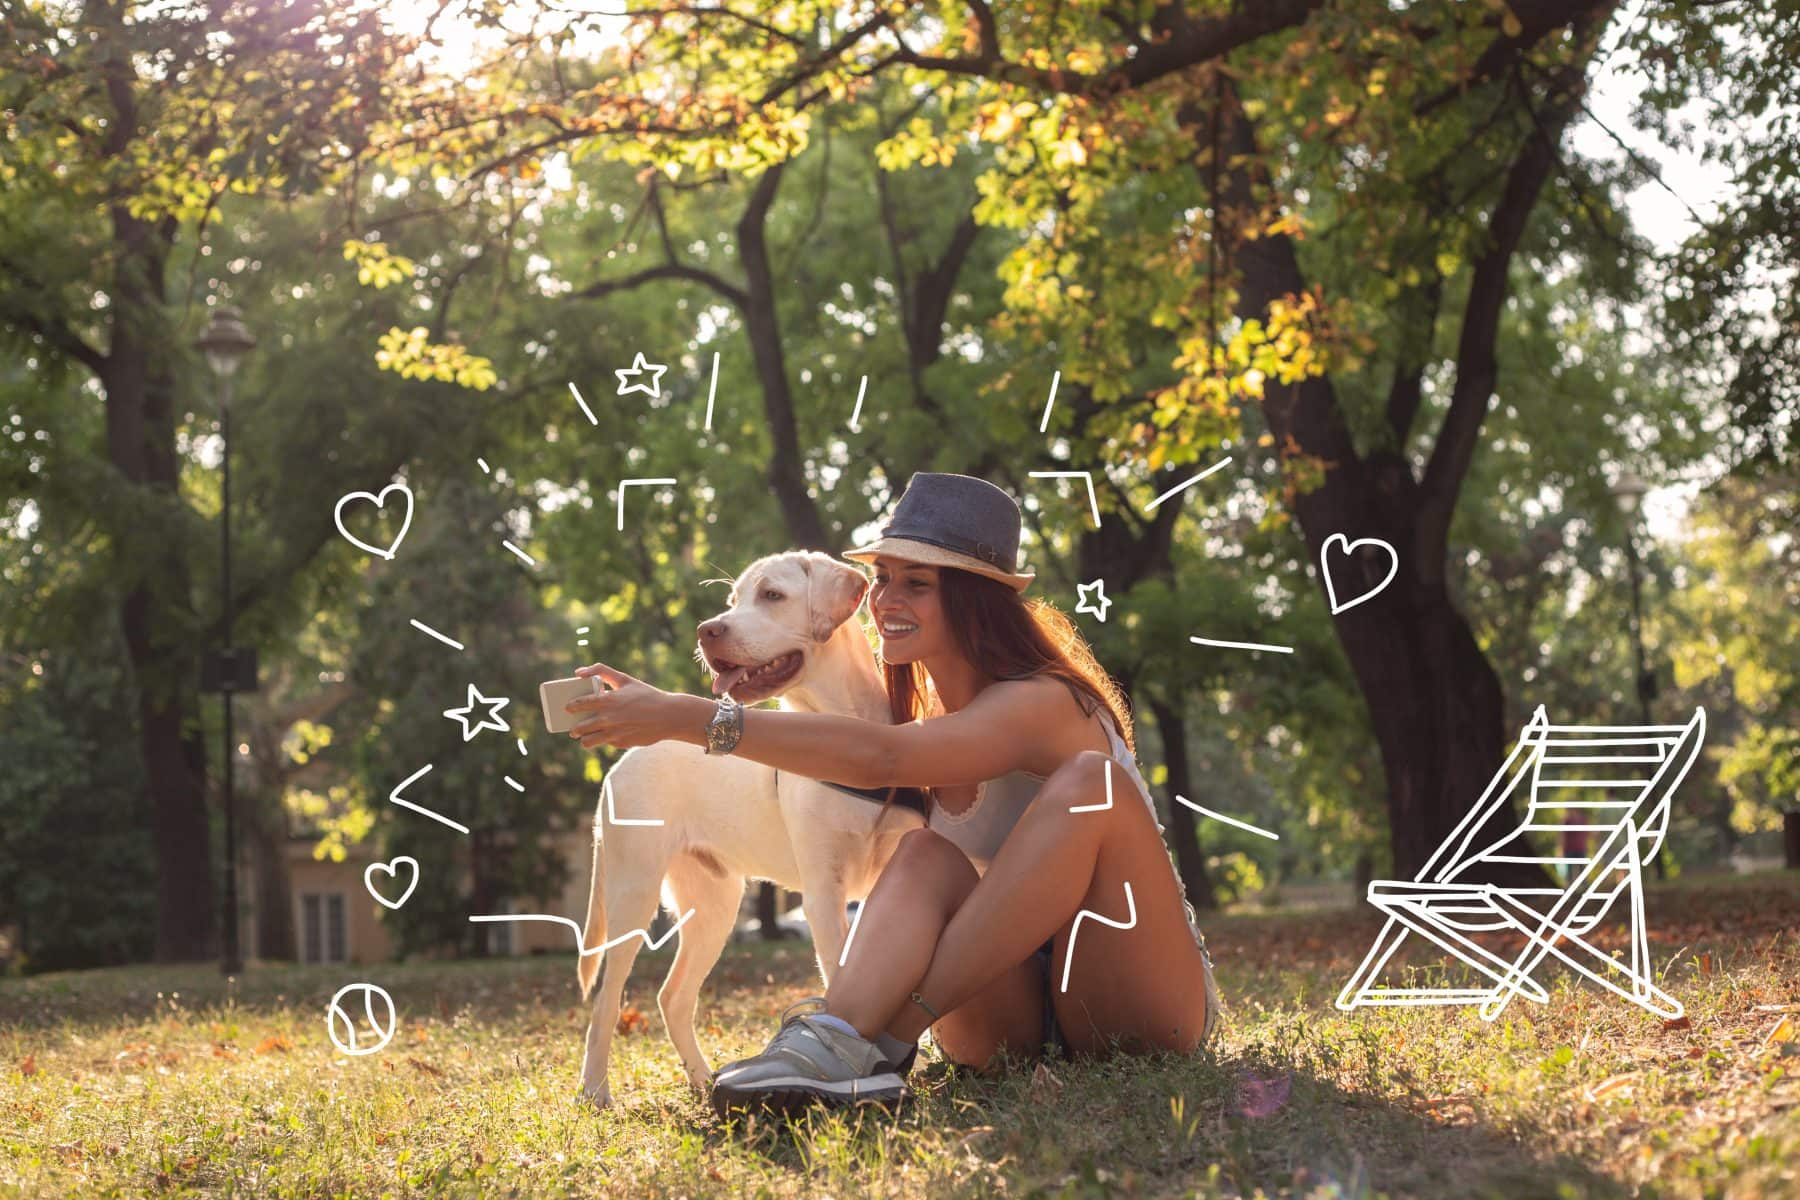 Labradors - Selfie time! A lady takes a selfie with her dog.